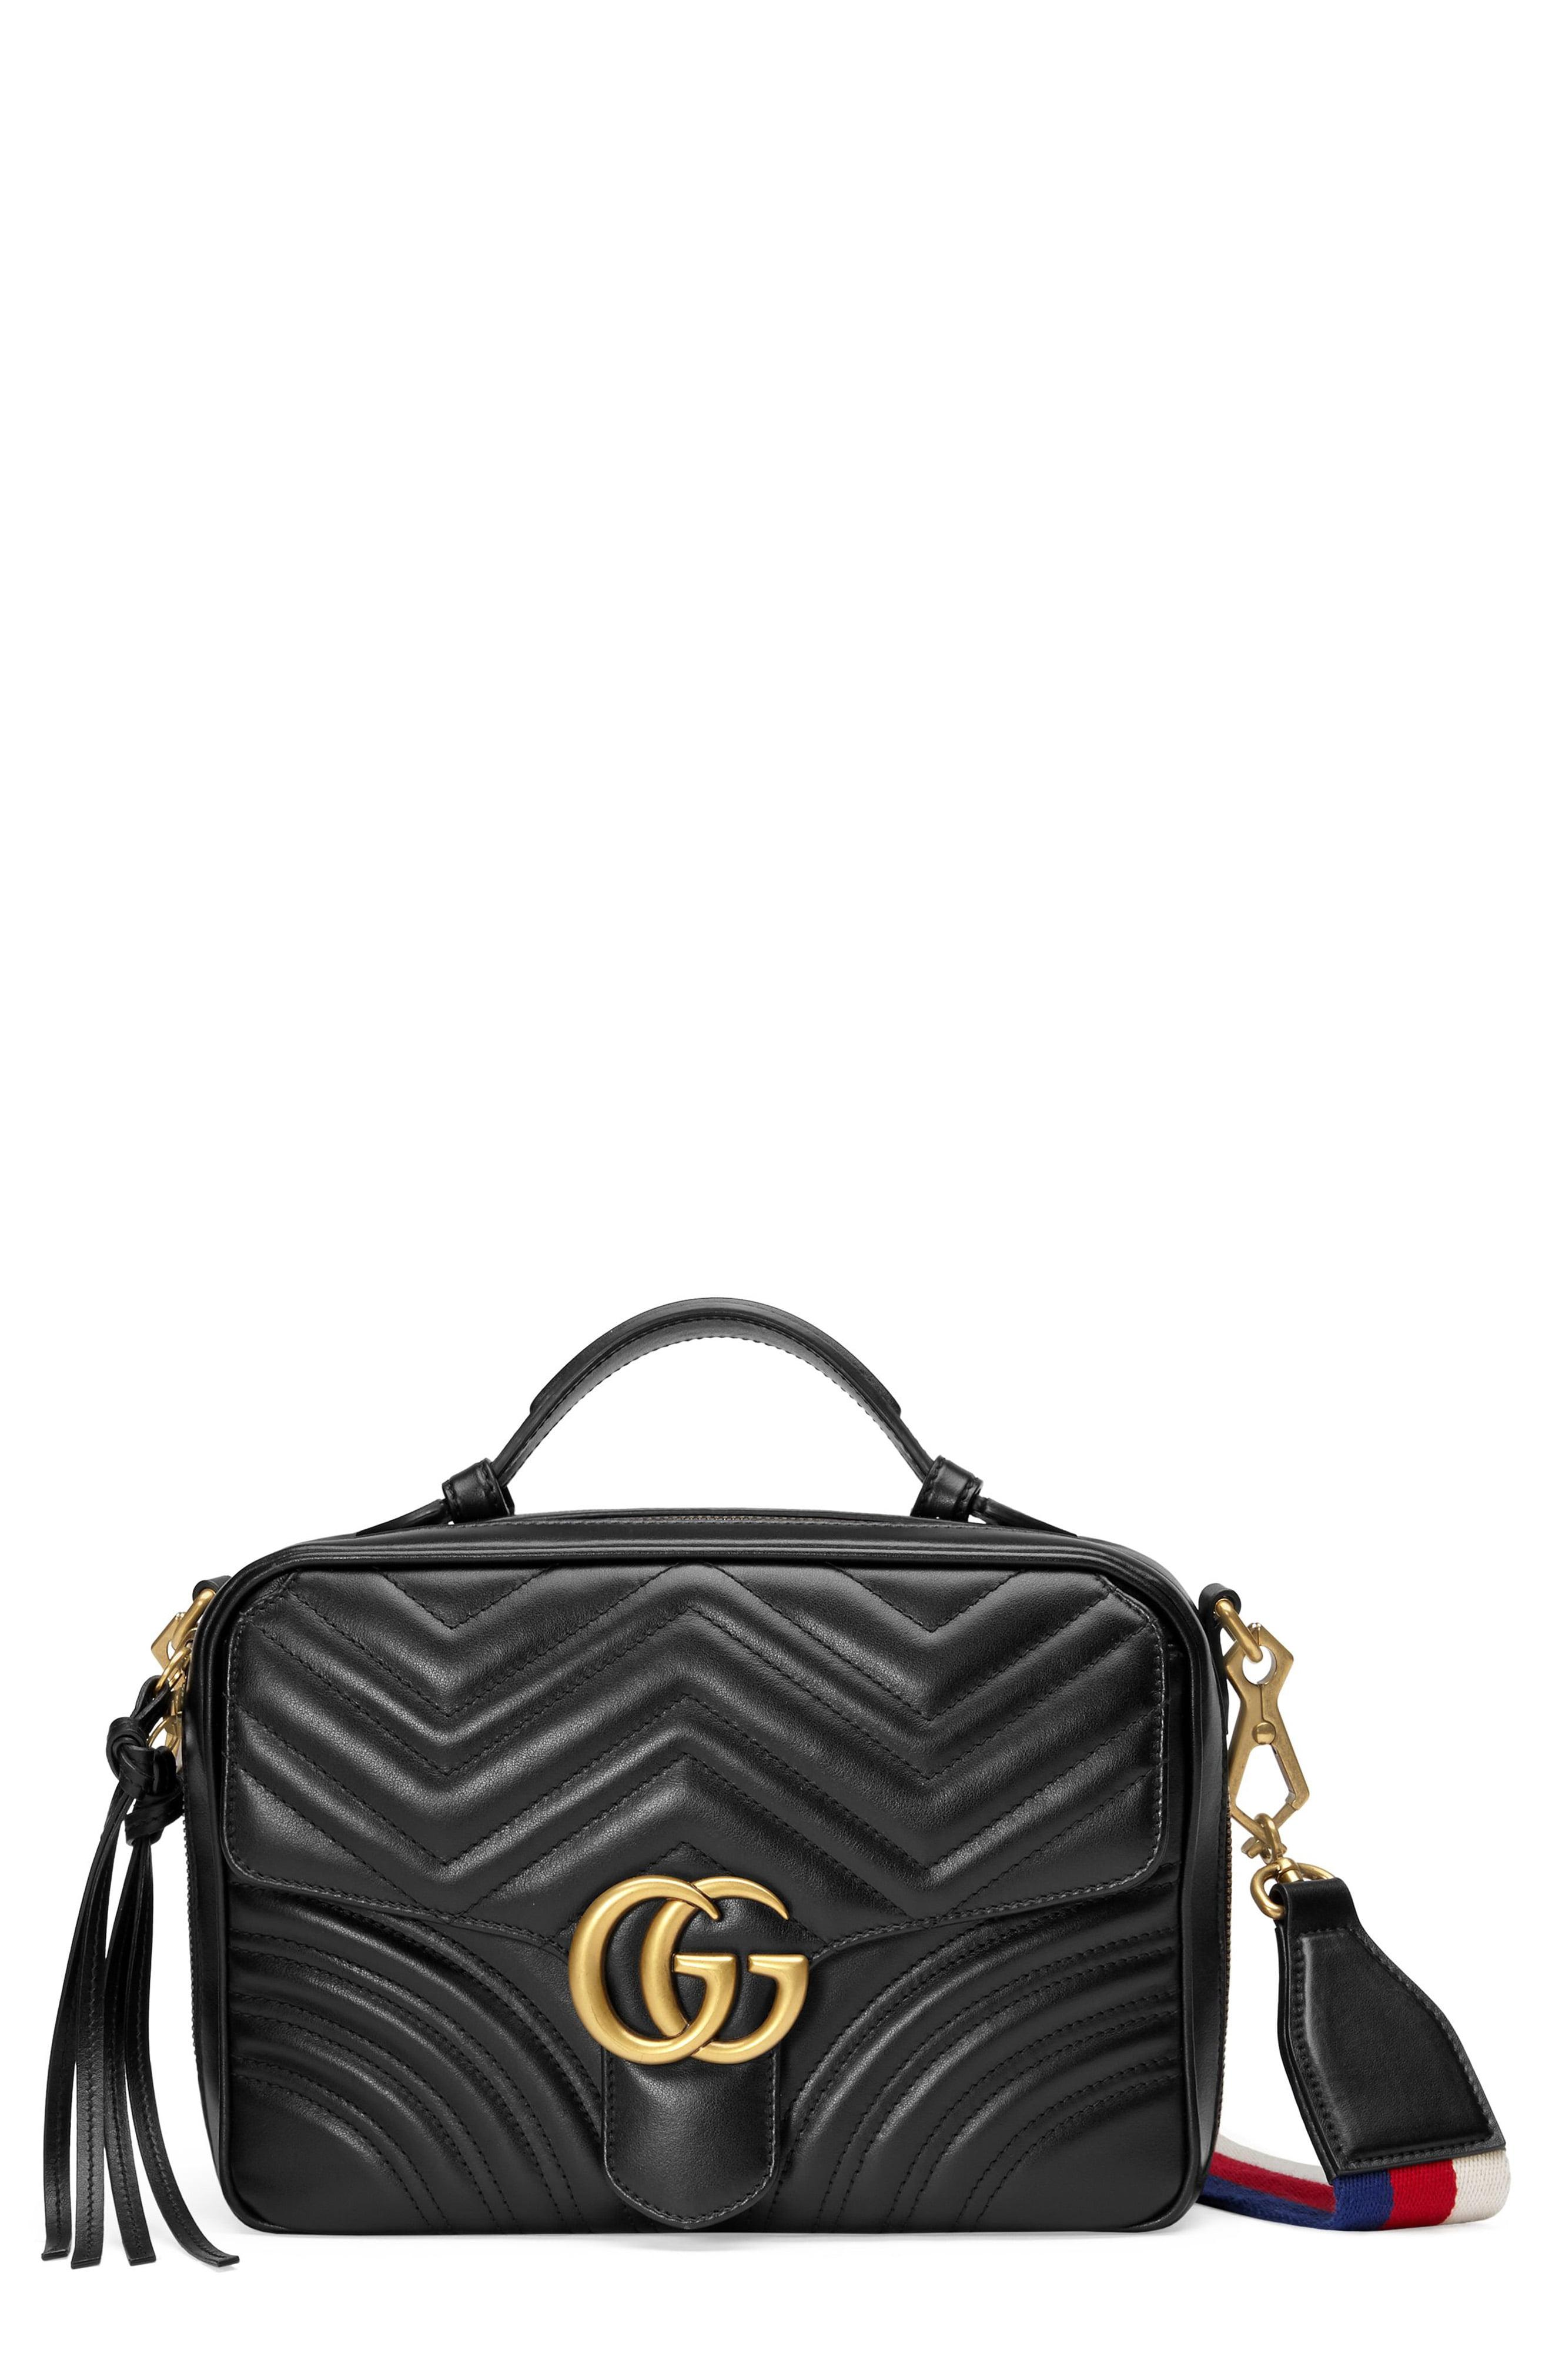 bfb65f07c252 Gucci. Women s Black Small Gg Marmont 2.0 Matelassé Leather Camera Bag With Webbed  Strap -